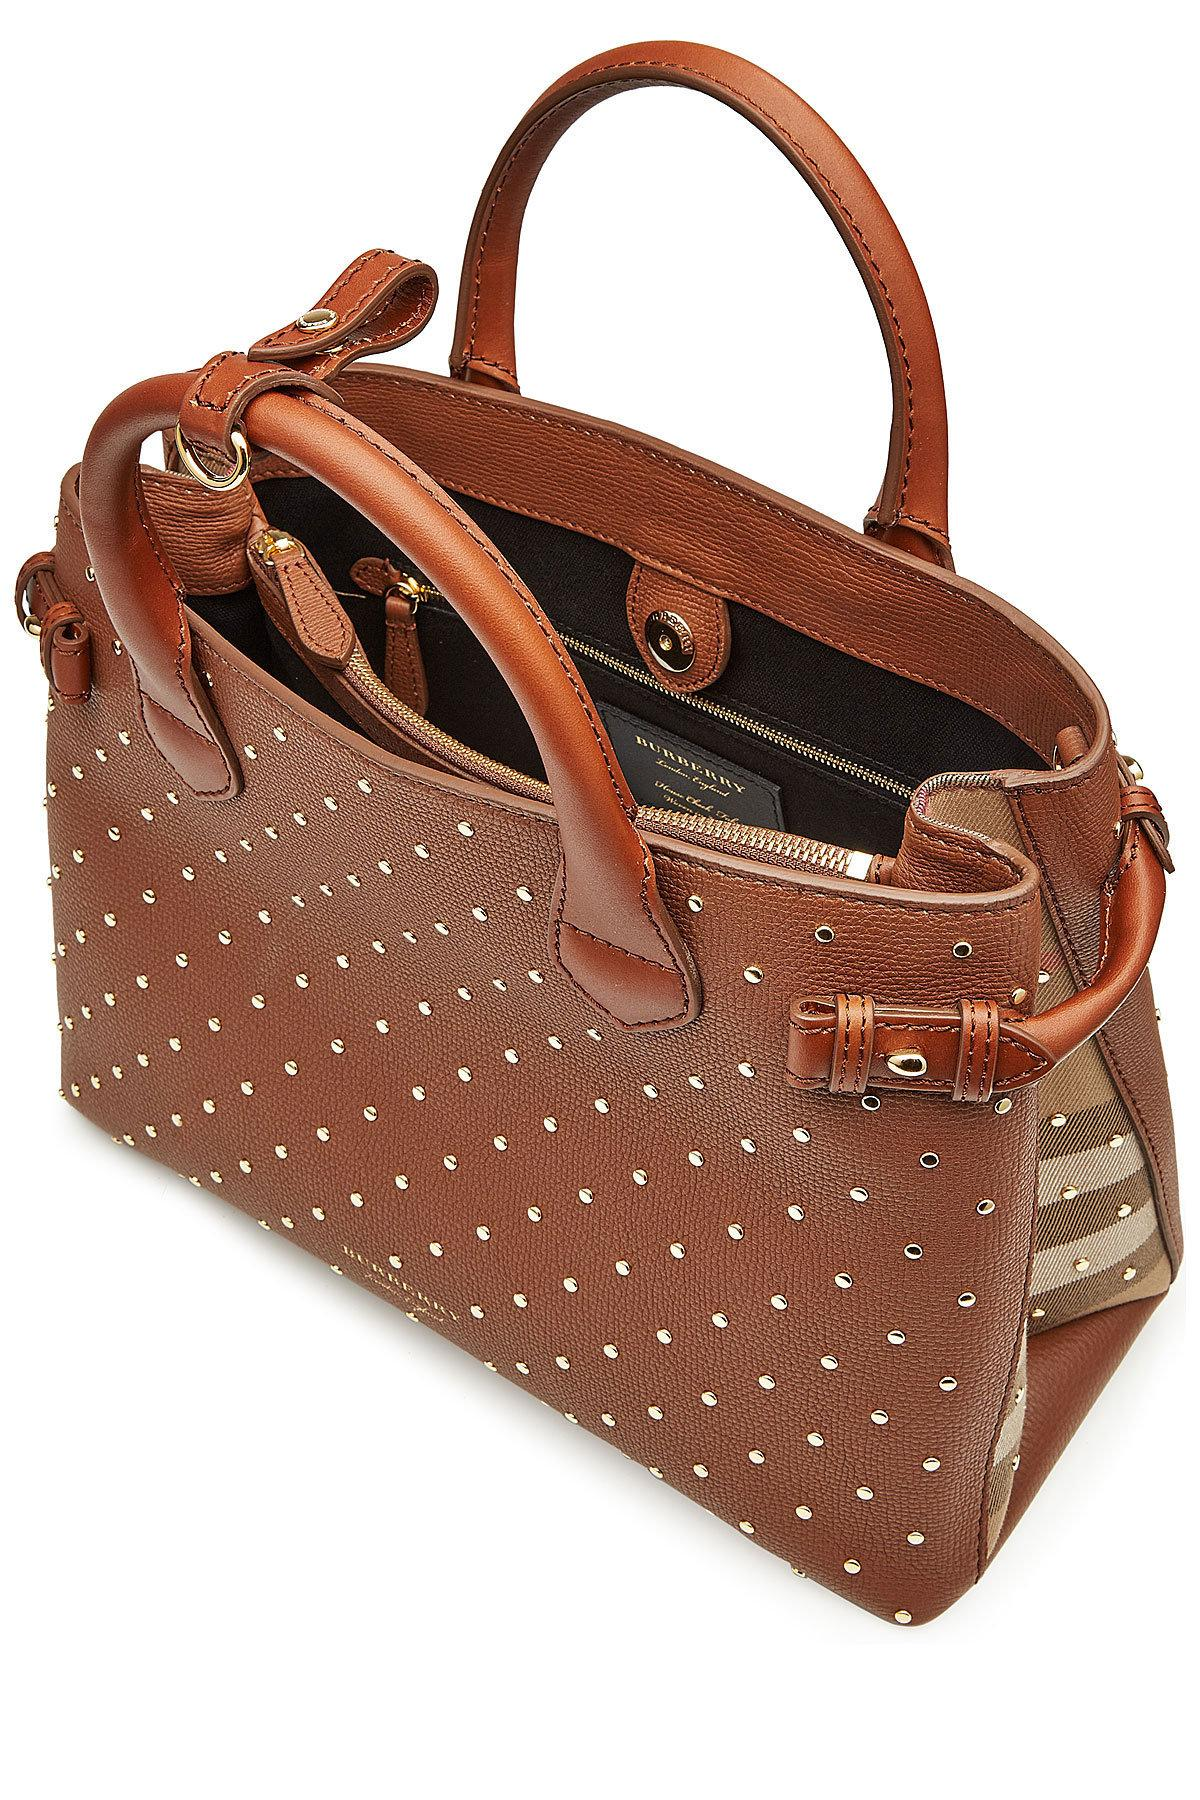 04399eafb5c8 Lyst - Burberry Medium Banner Leather Tote With Studs in Brown